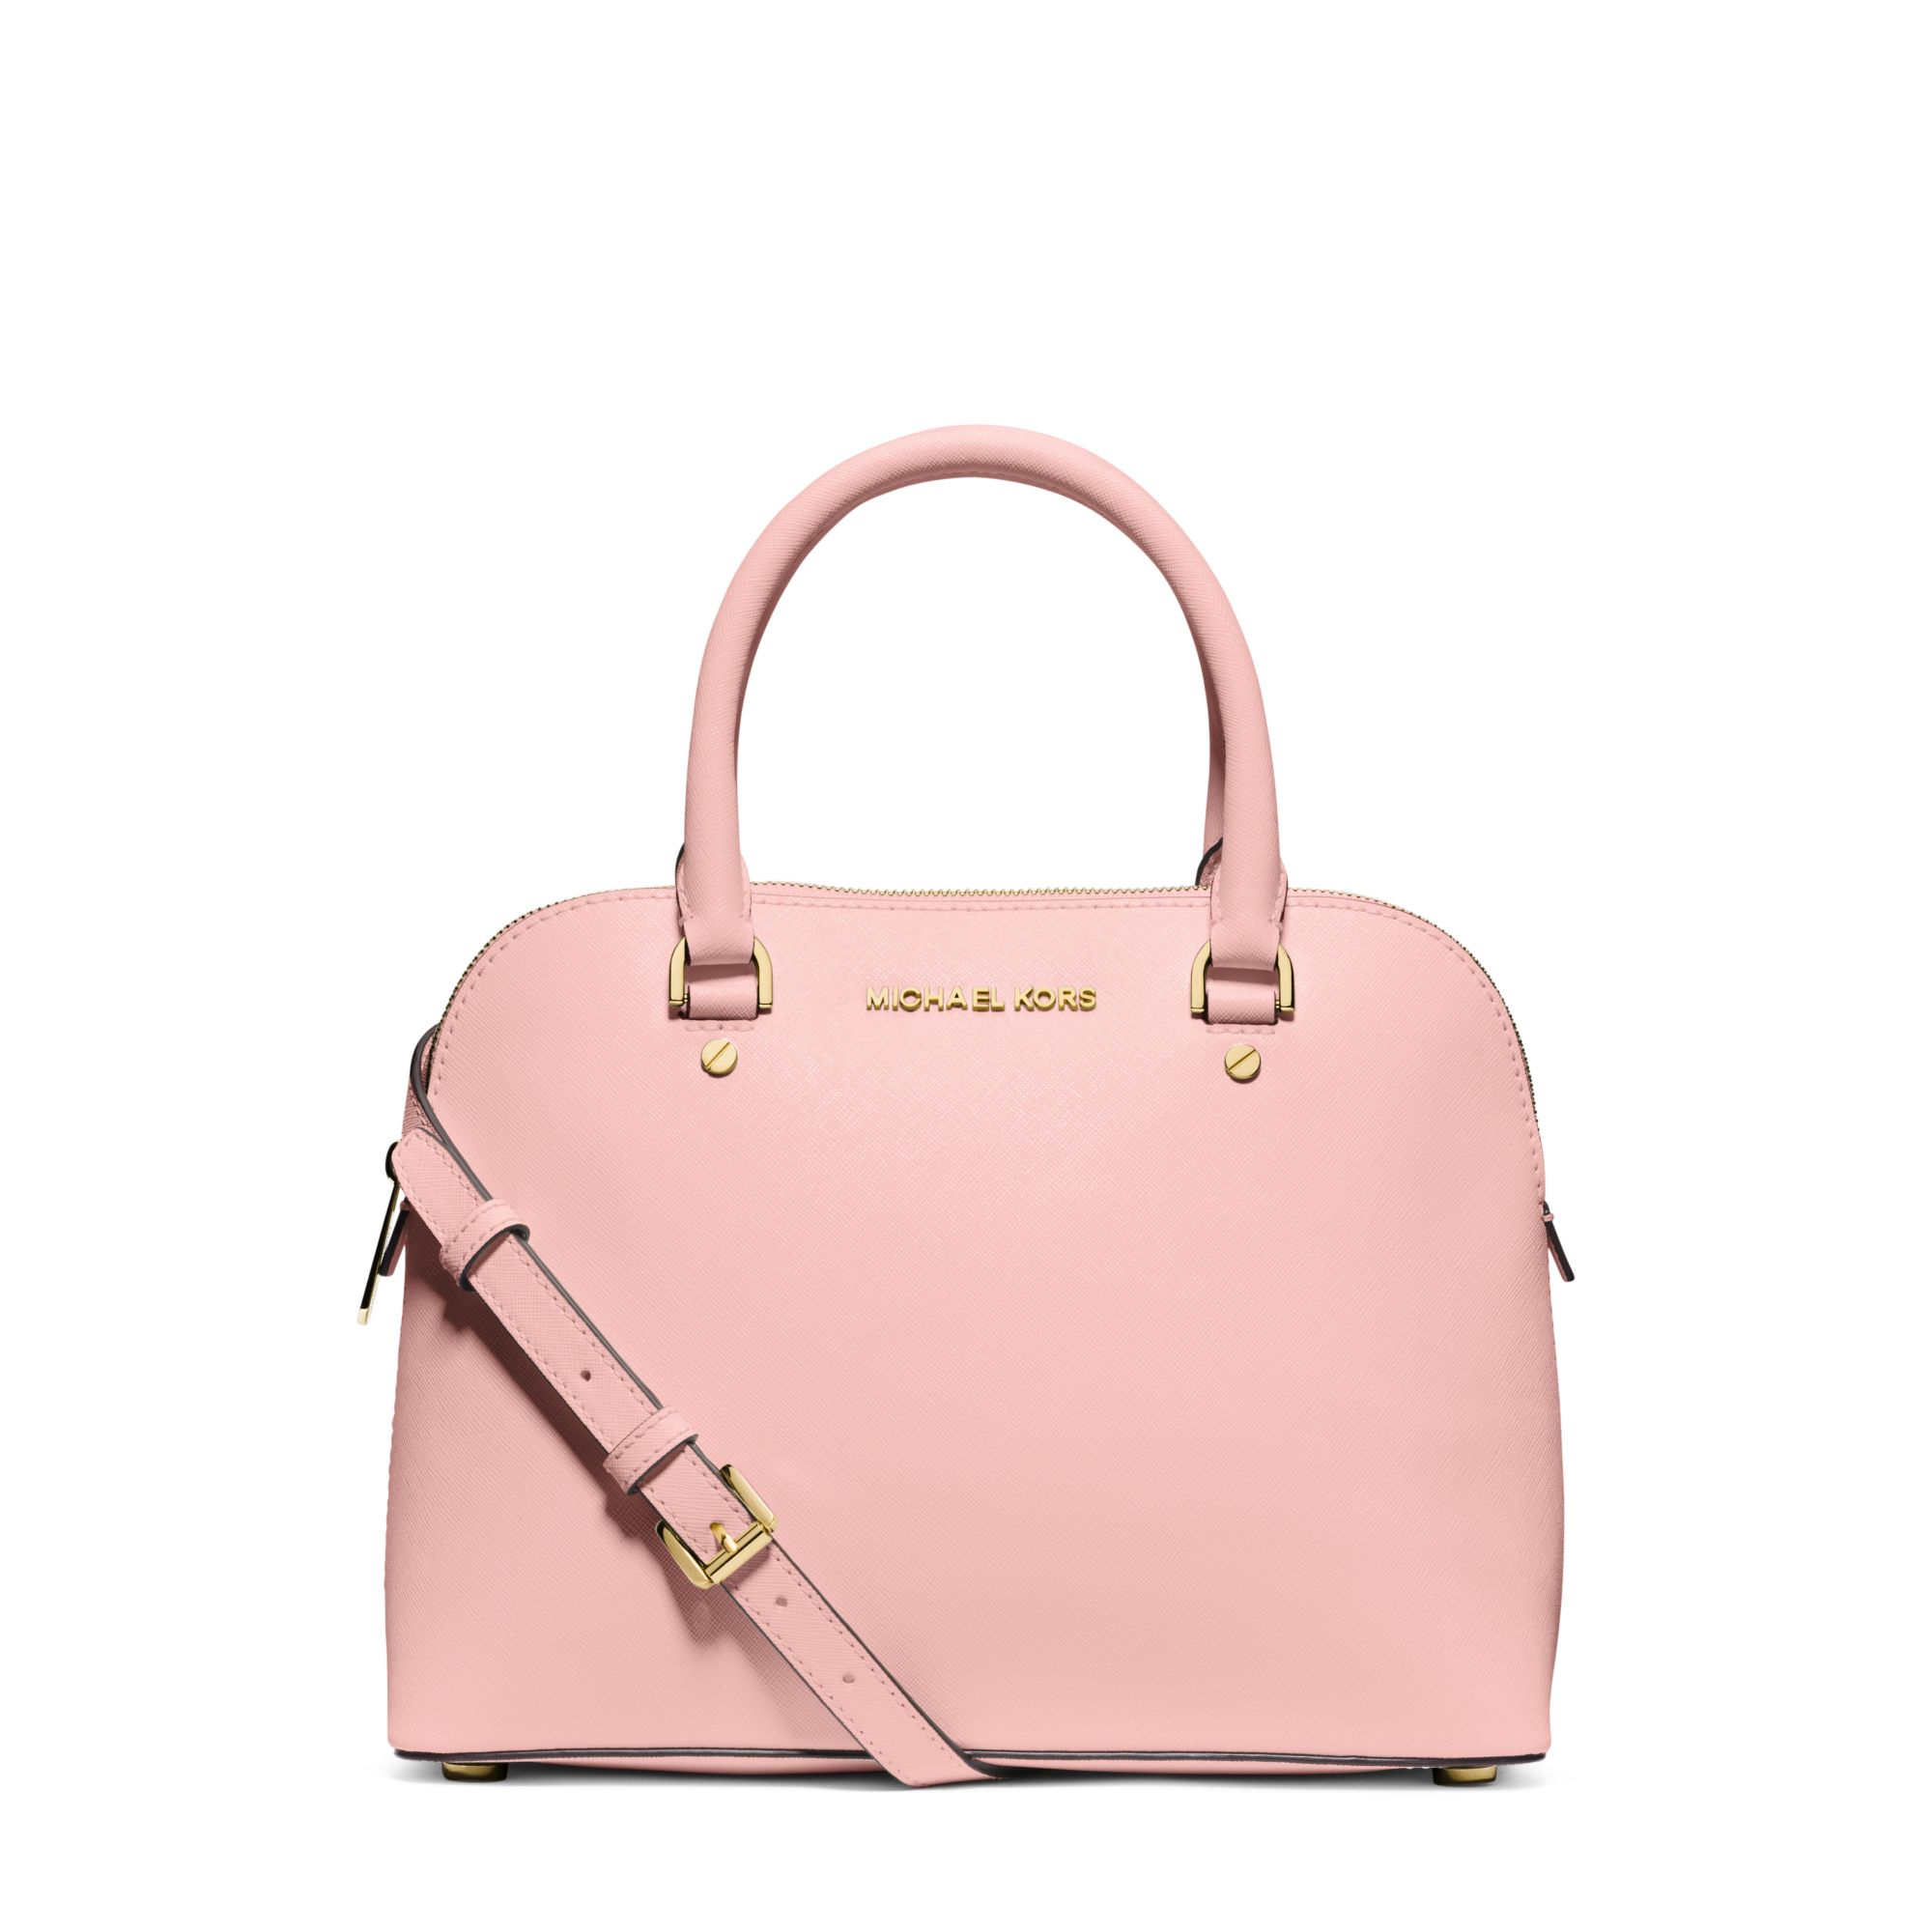 73aeb7e1dac0 Lyst - Michael Kors Cindy Medium Saffiano Leather Satchel in Pink